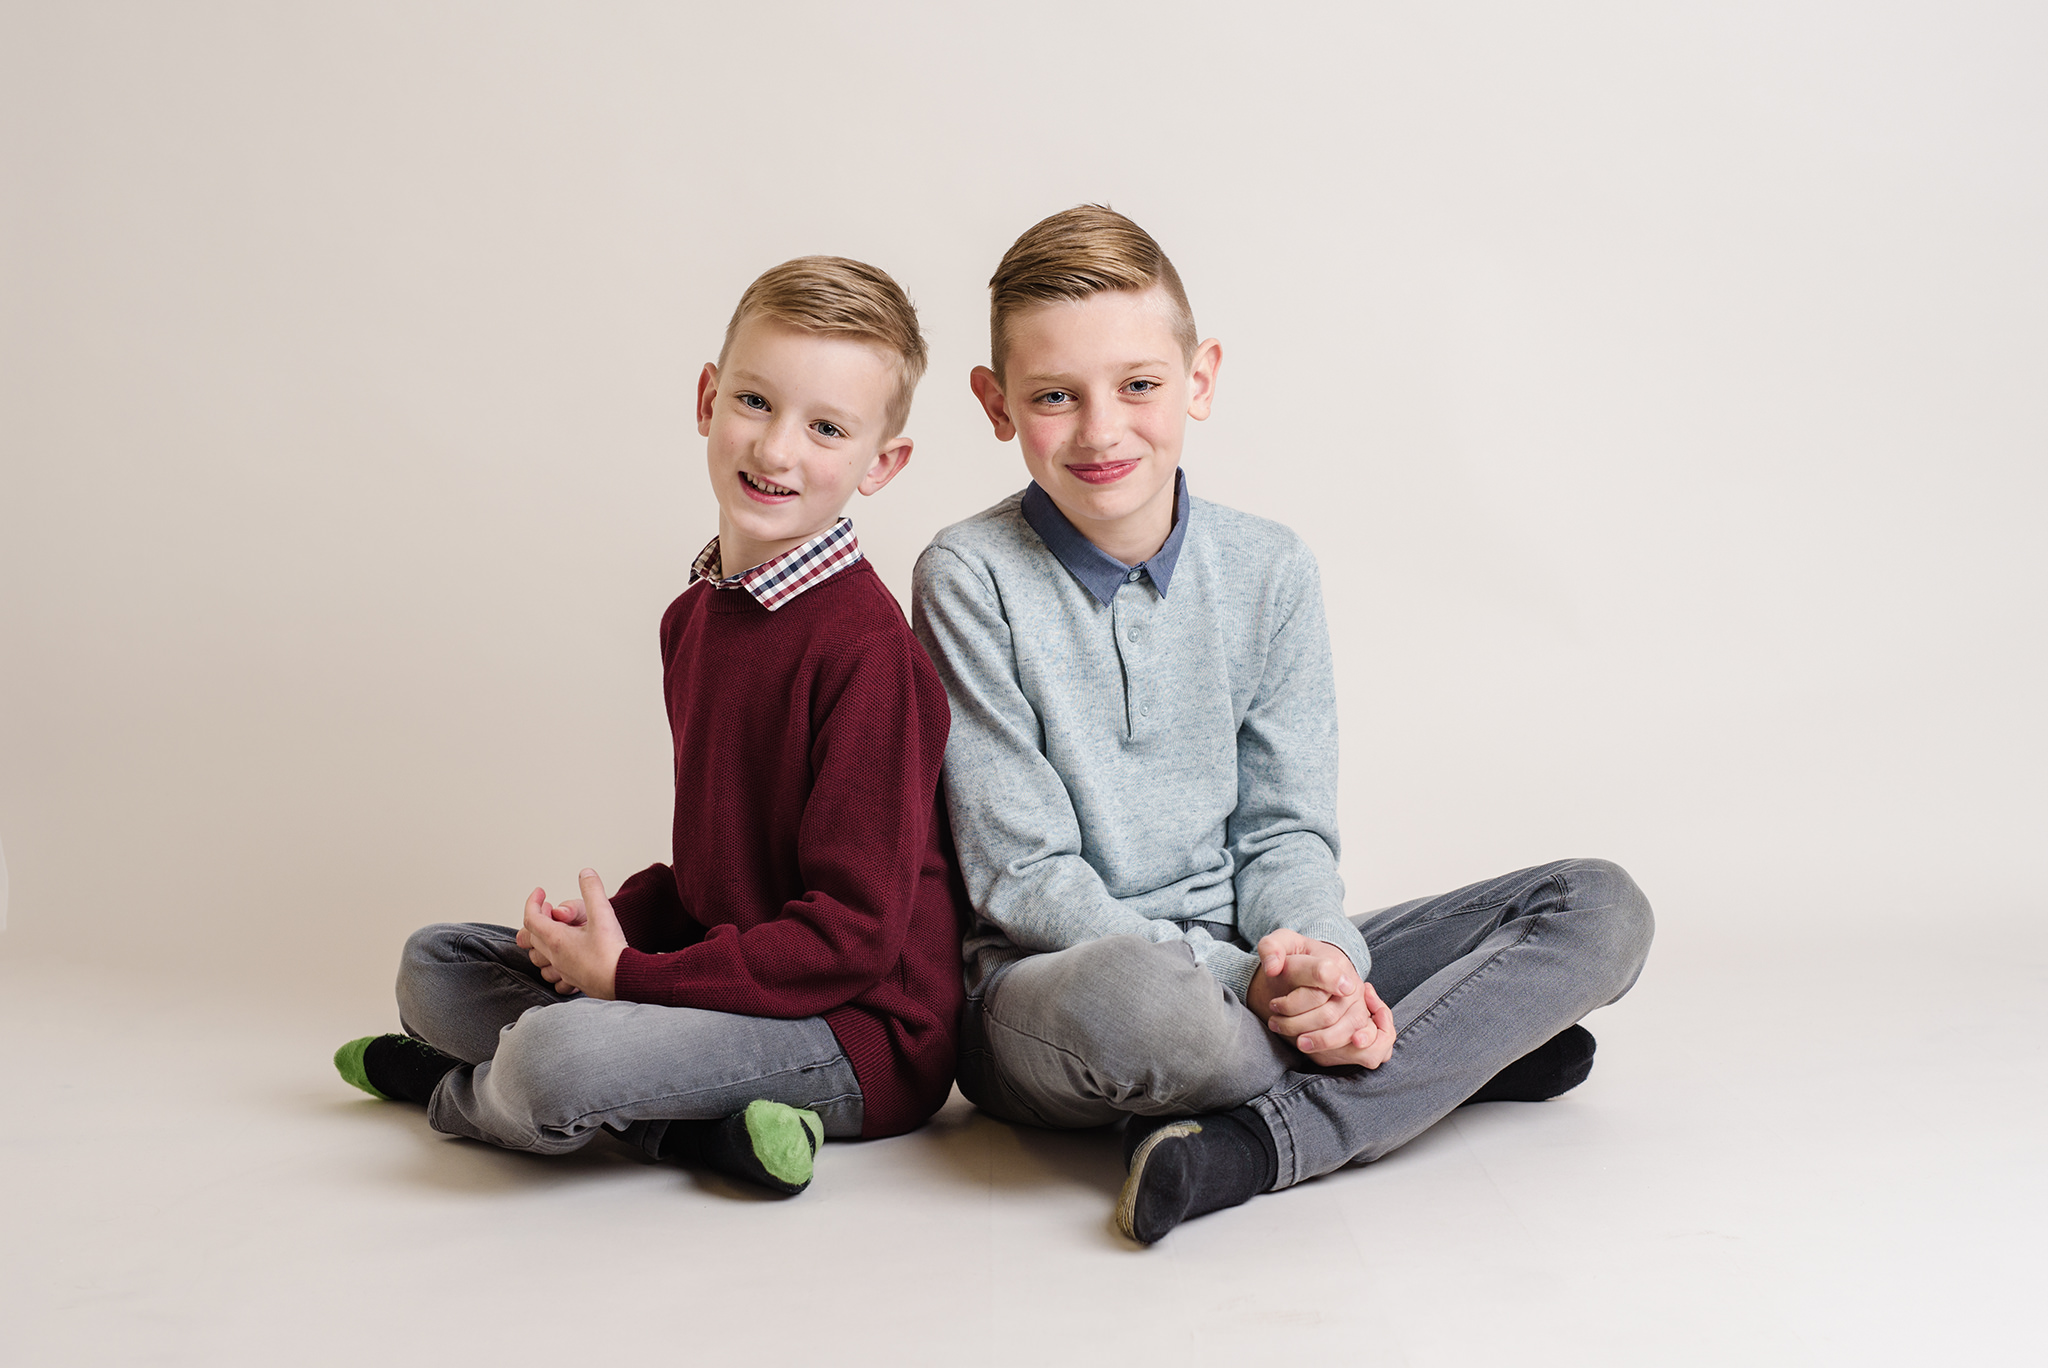 Two brothers sitting back to back cross legged in the studio | Children's Photographer Aylesbury Buckinghamshire and Thame Oxfordshire